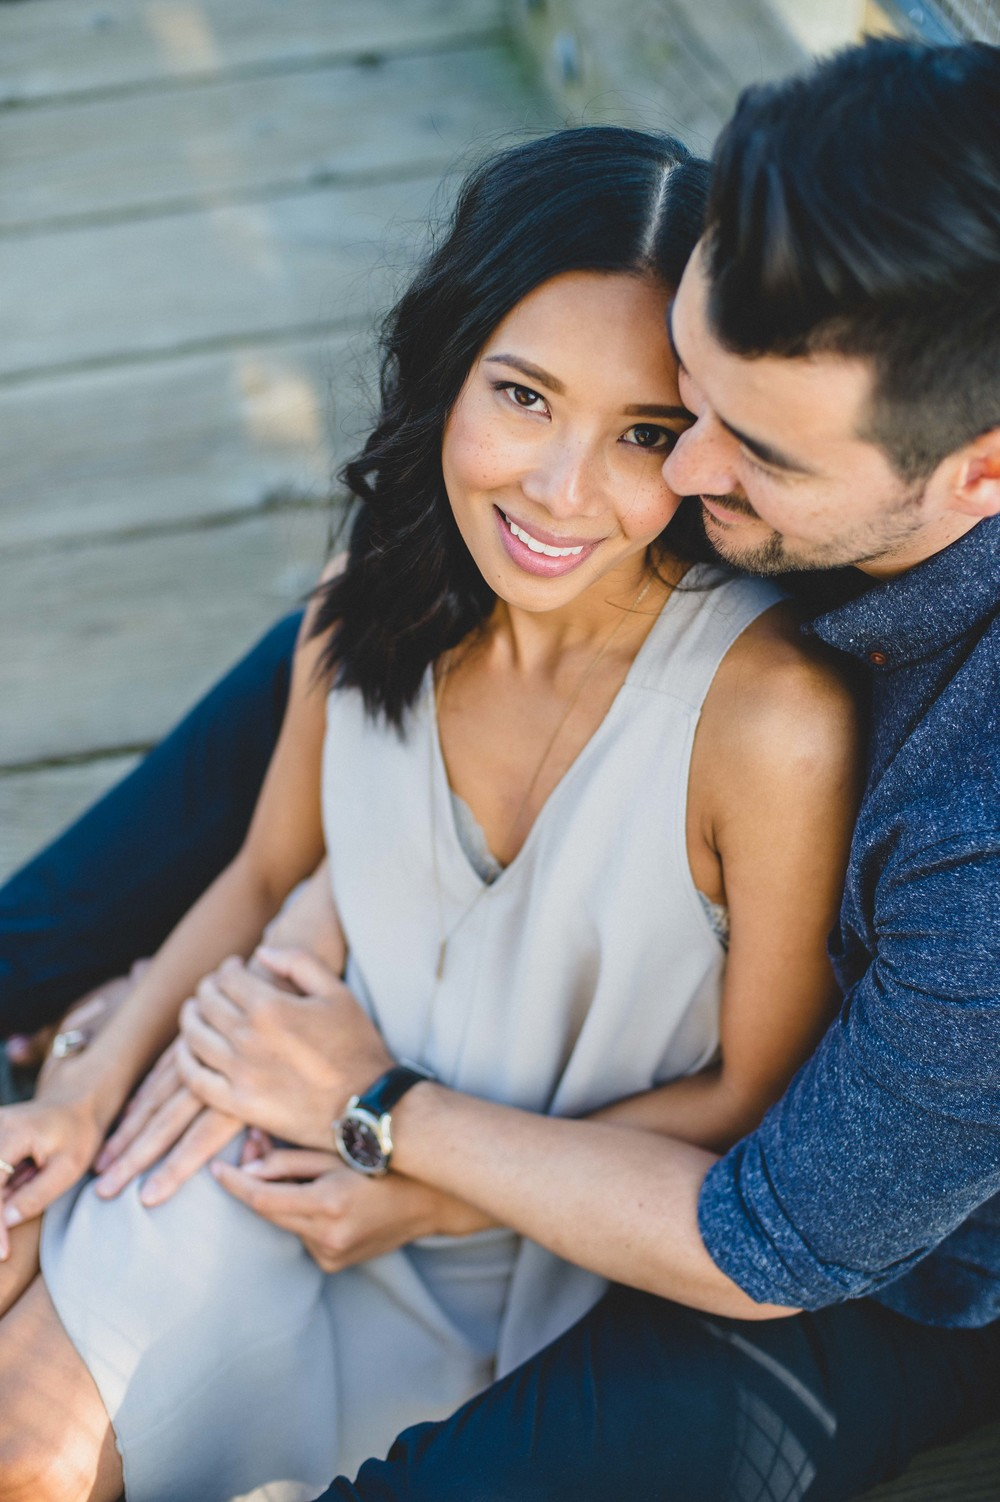 Vaccouver Steveston engagement photography Edward Lai Photography-10.jpg